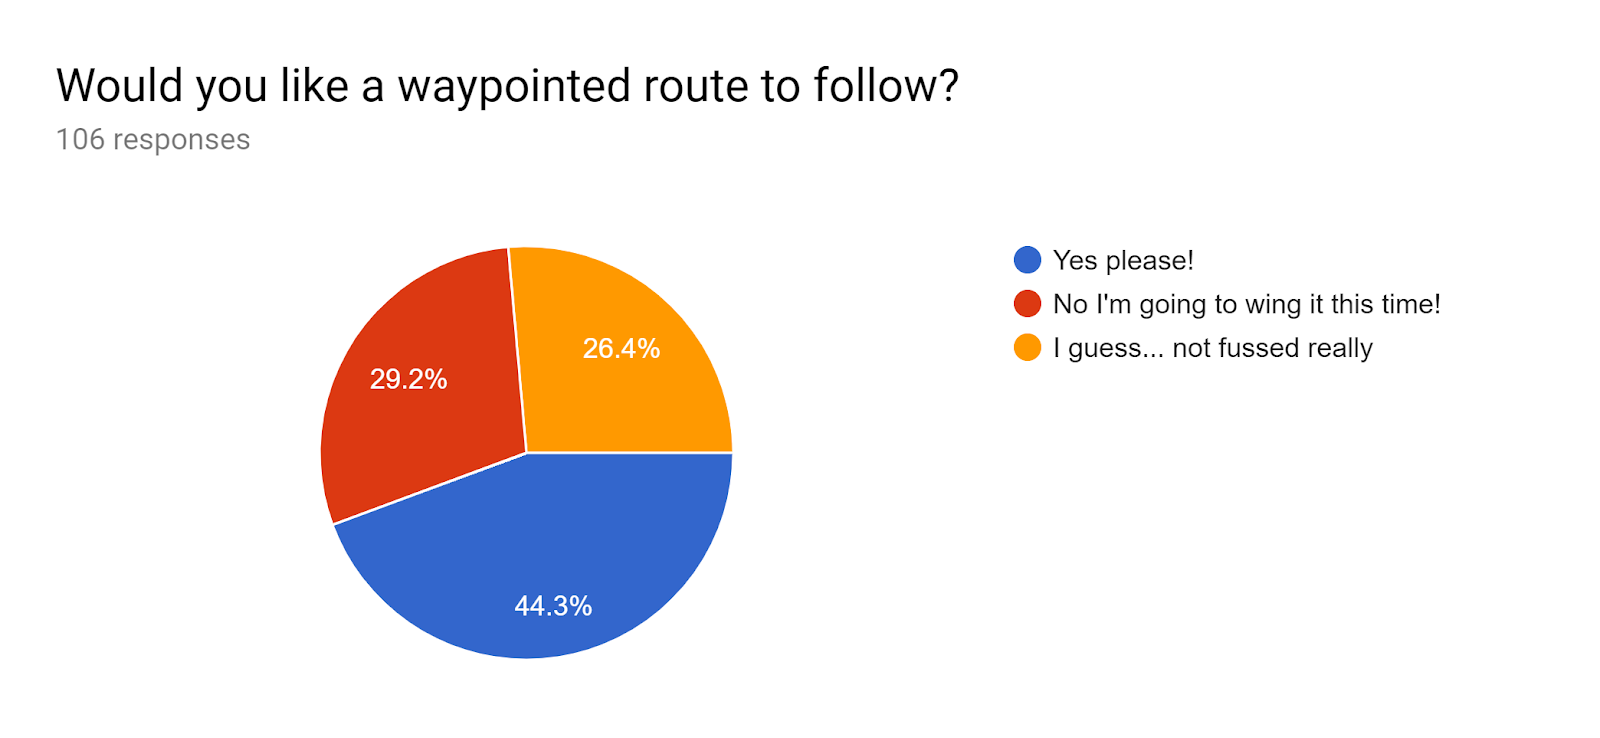 Forms response chart. Question title: Would you like a waypointed route to follow?. Number of responses: 106 responses.